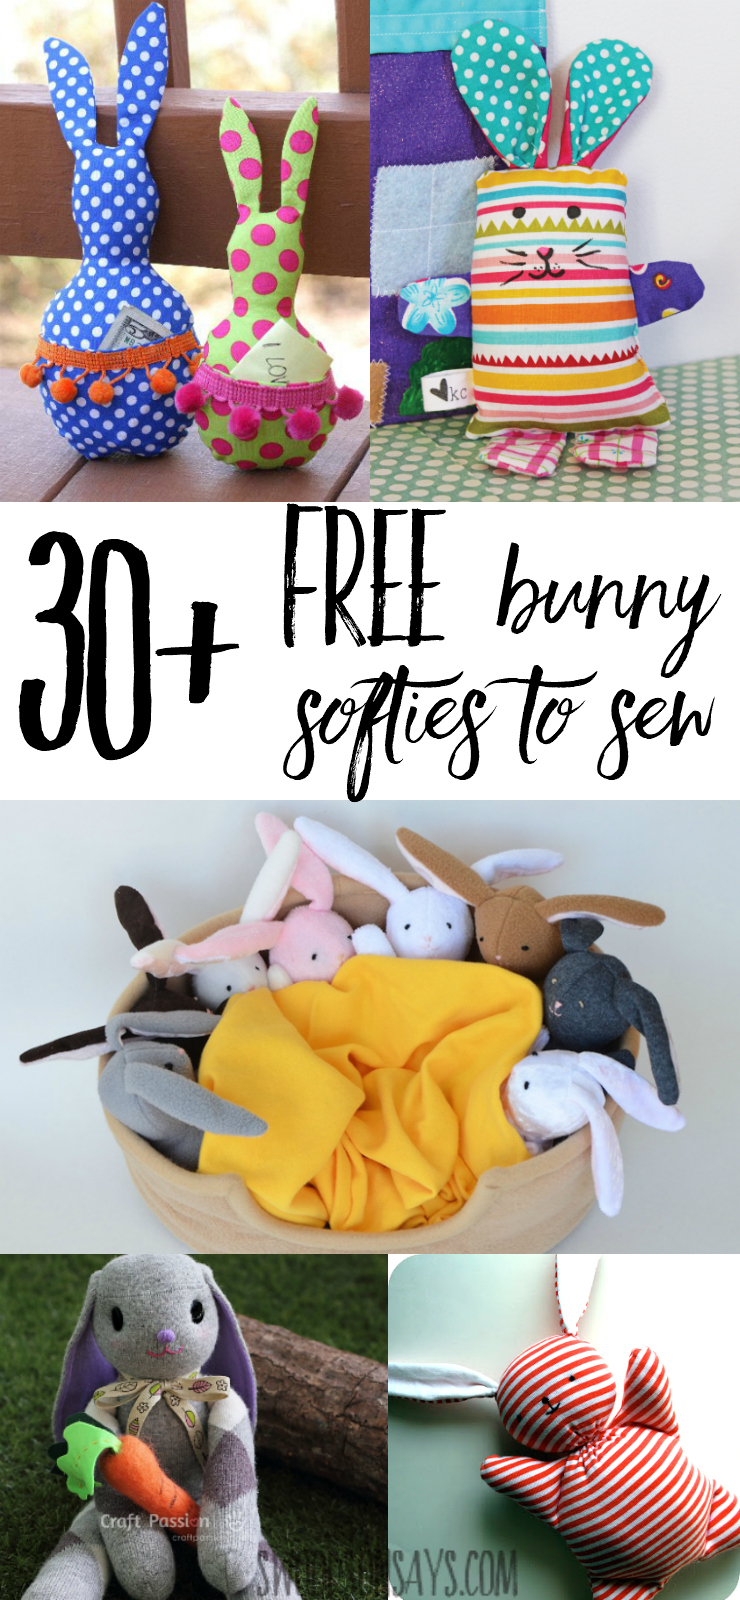 Check out over 30 free bunny softie sewing patterns. These are rabbit sewing tutorials and rabbit sewing patterns, all easy to make and perfect for handmade Easter basket ideas.